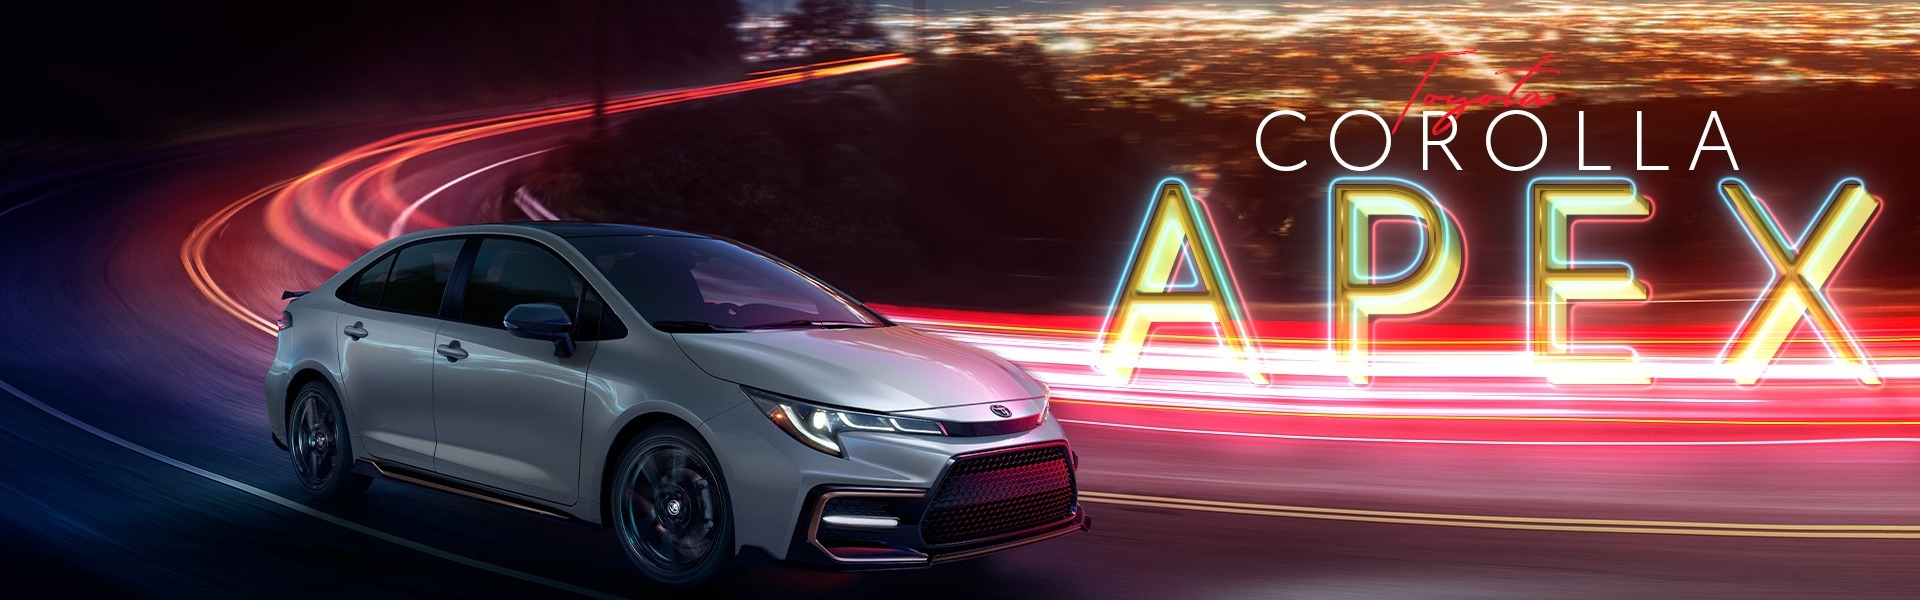 2021 Corolla Apex: The Top Of The Food Chain